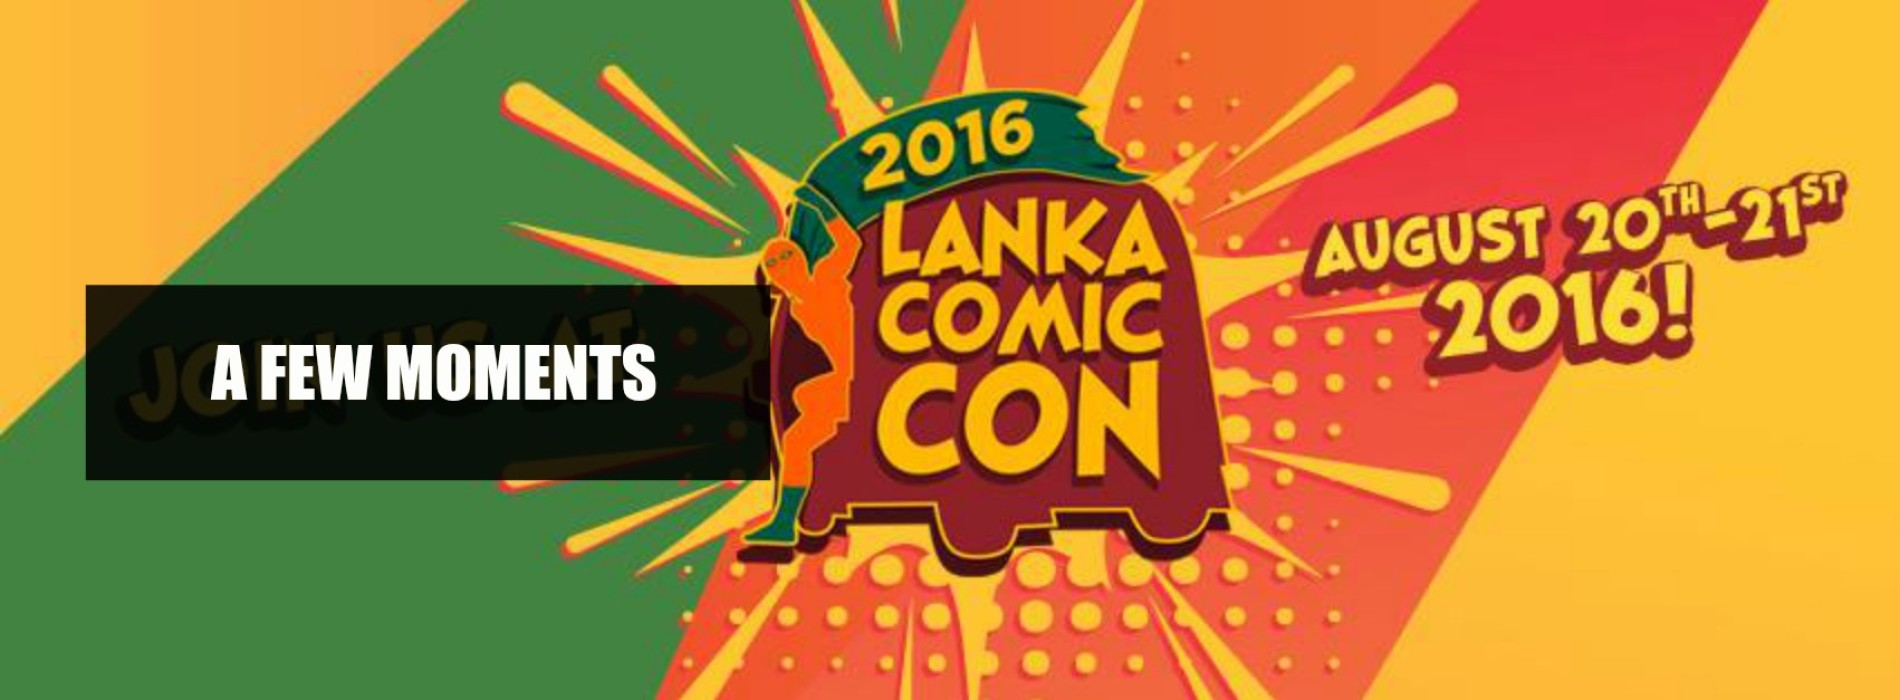 Lanka Comic Con 2016 (A Few Moments)